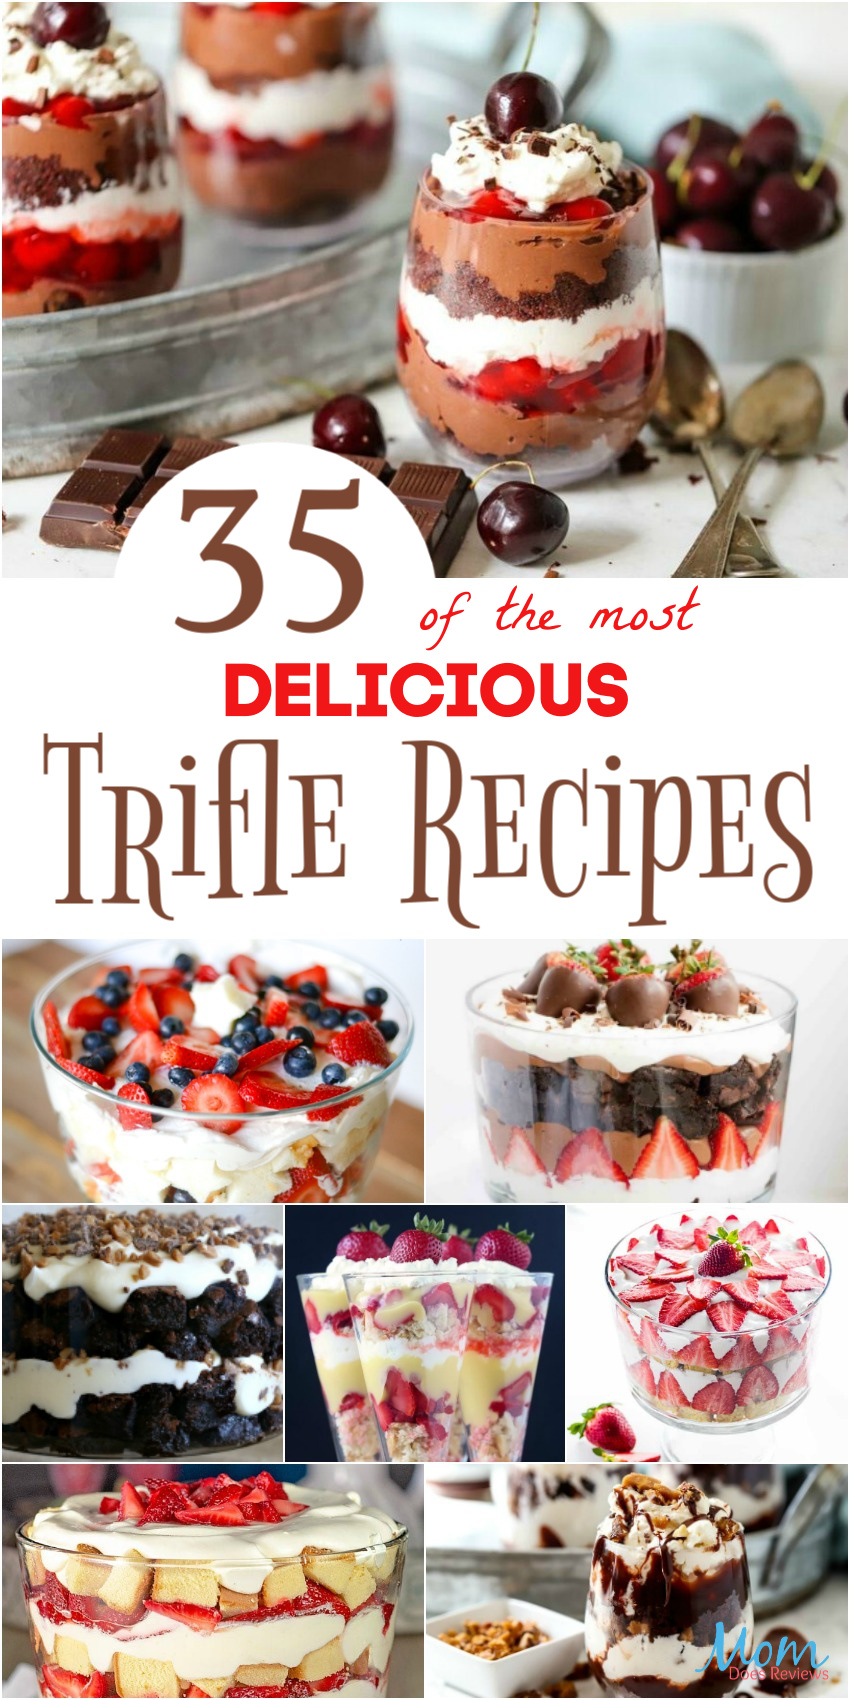 35 of the most Delicious Trifle Recipes Your Family Will Love #recipes #desserts #sweets